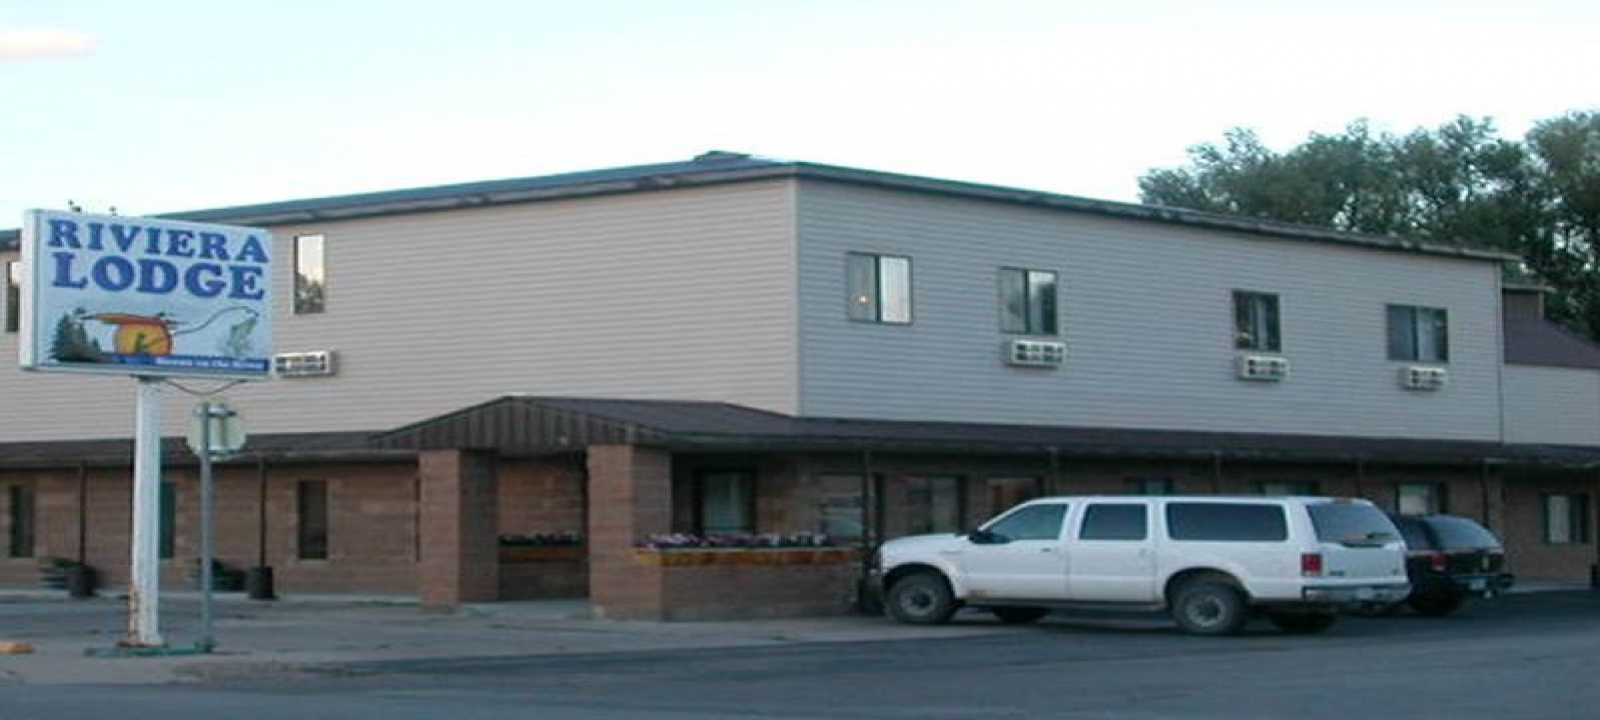 Saratoga, Wyoming, ,North American Properties,For Sale,1023